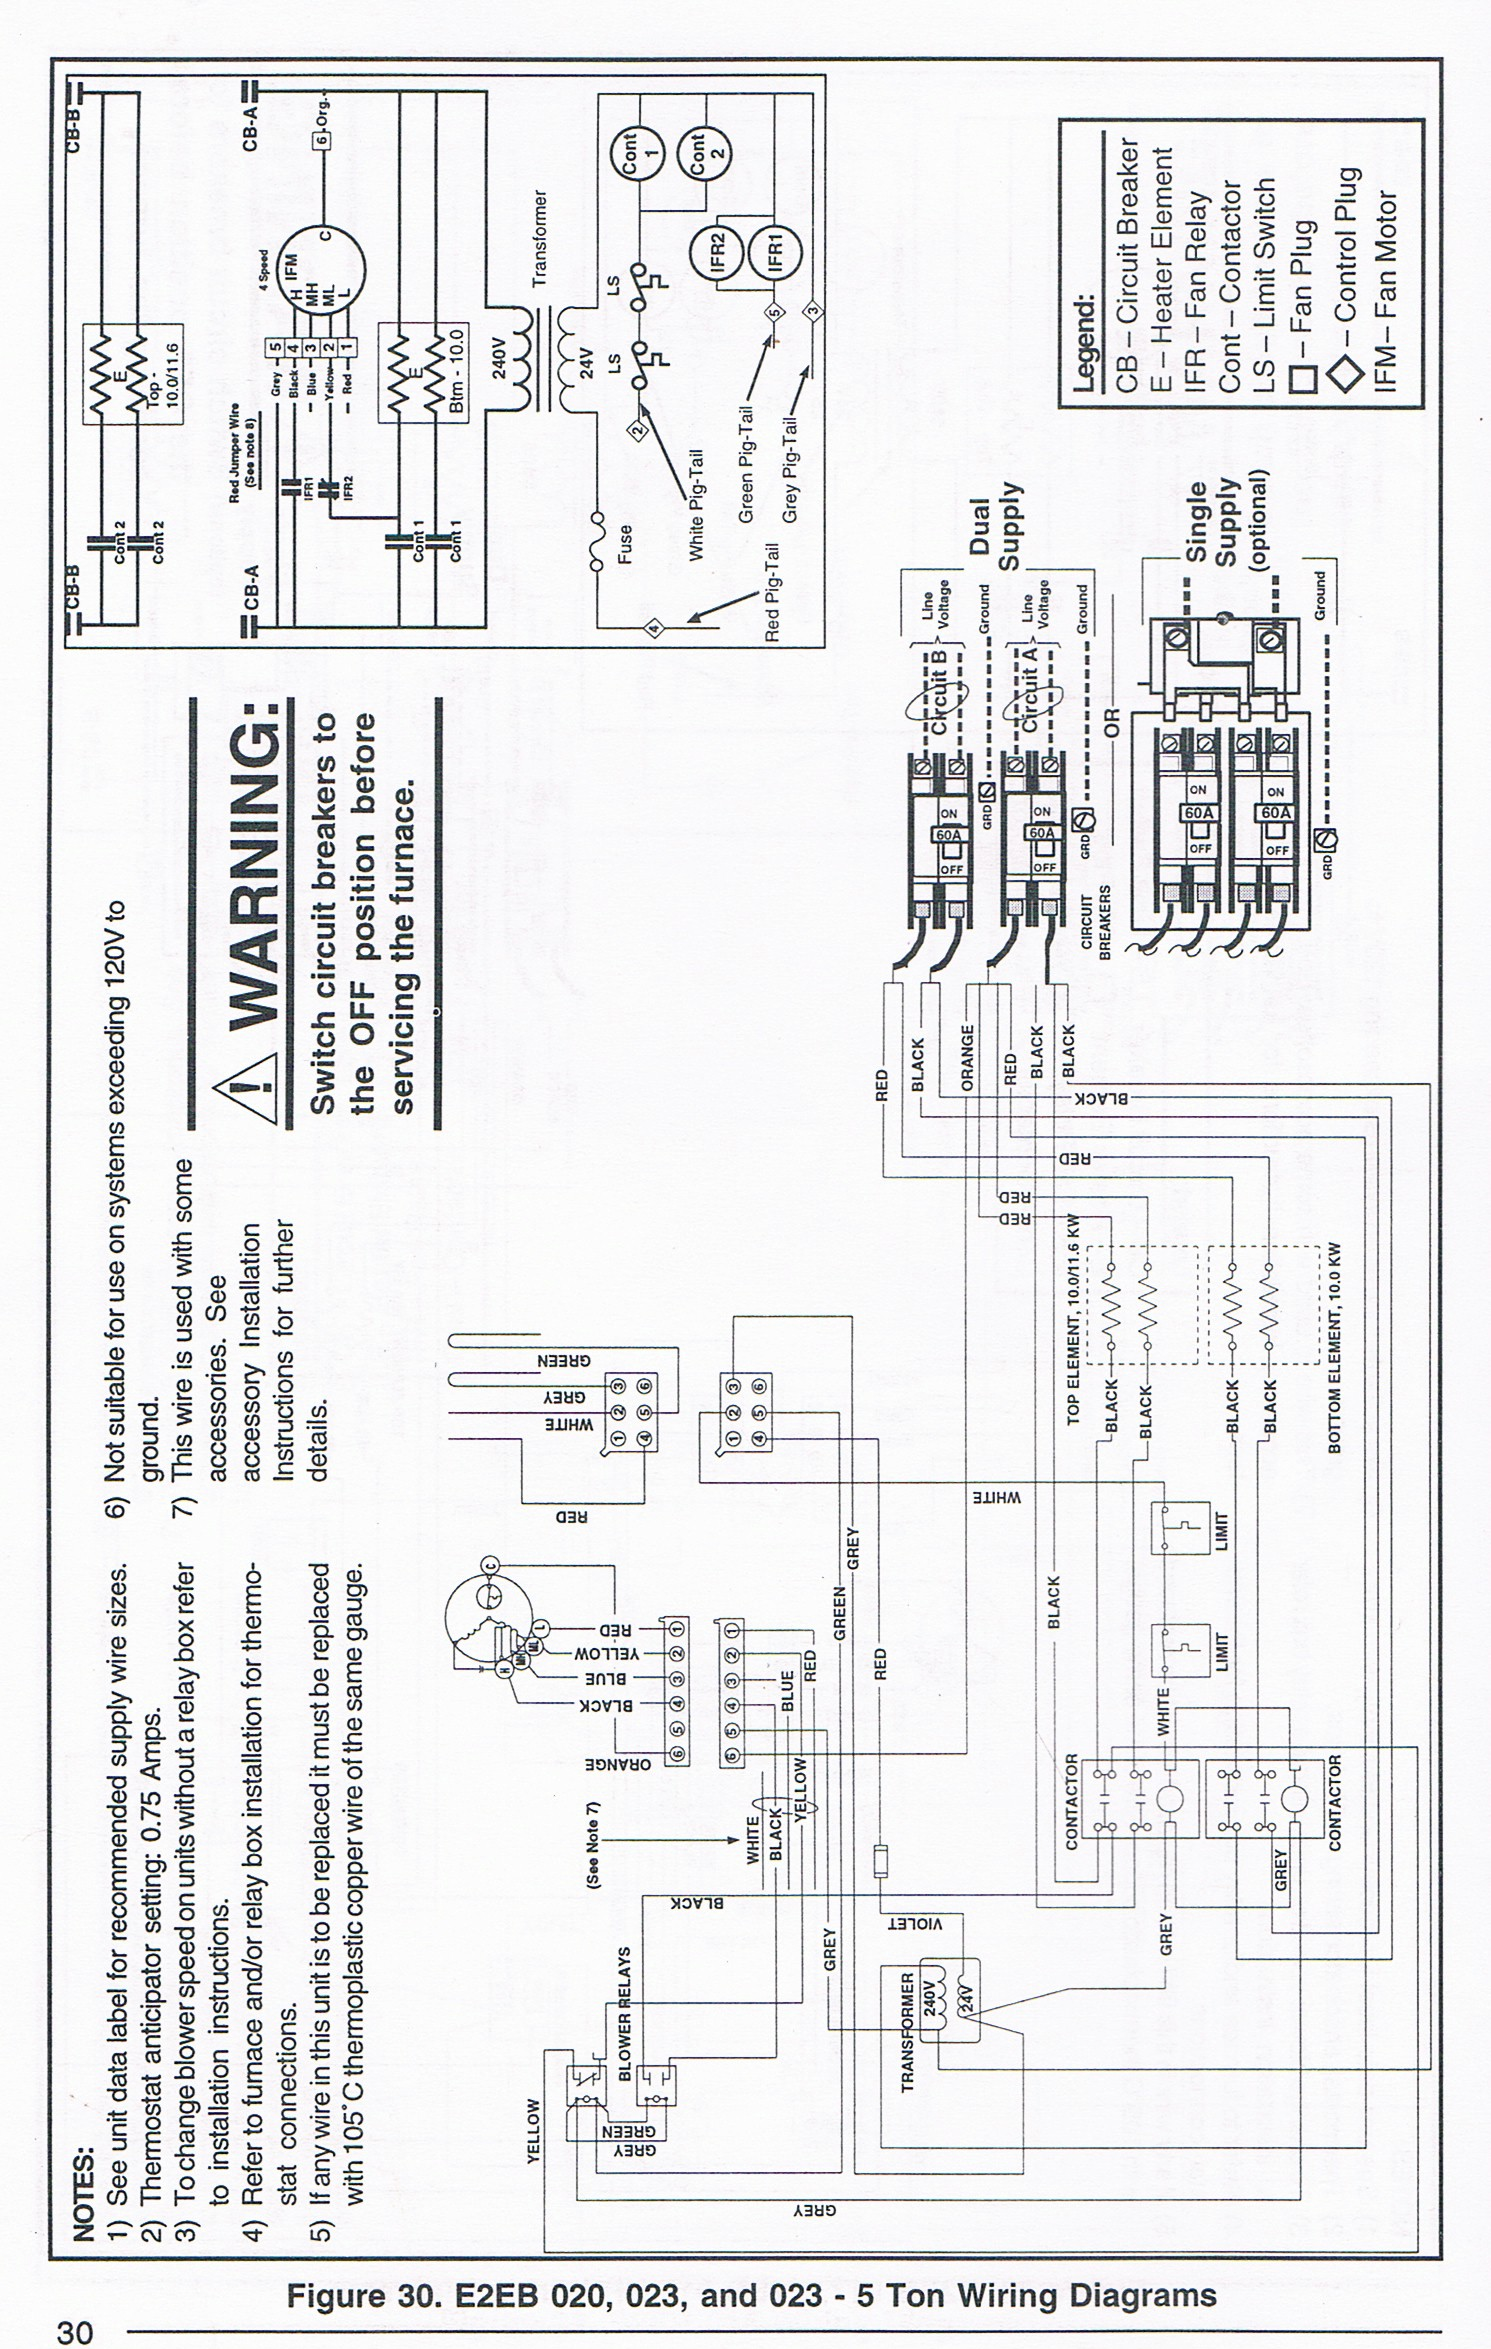 2011 05 04_234443_e2eb wiring diagram for intertherm eb series readingrat net intertherm electric furnace wiring diagram at fashall.co